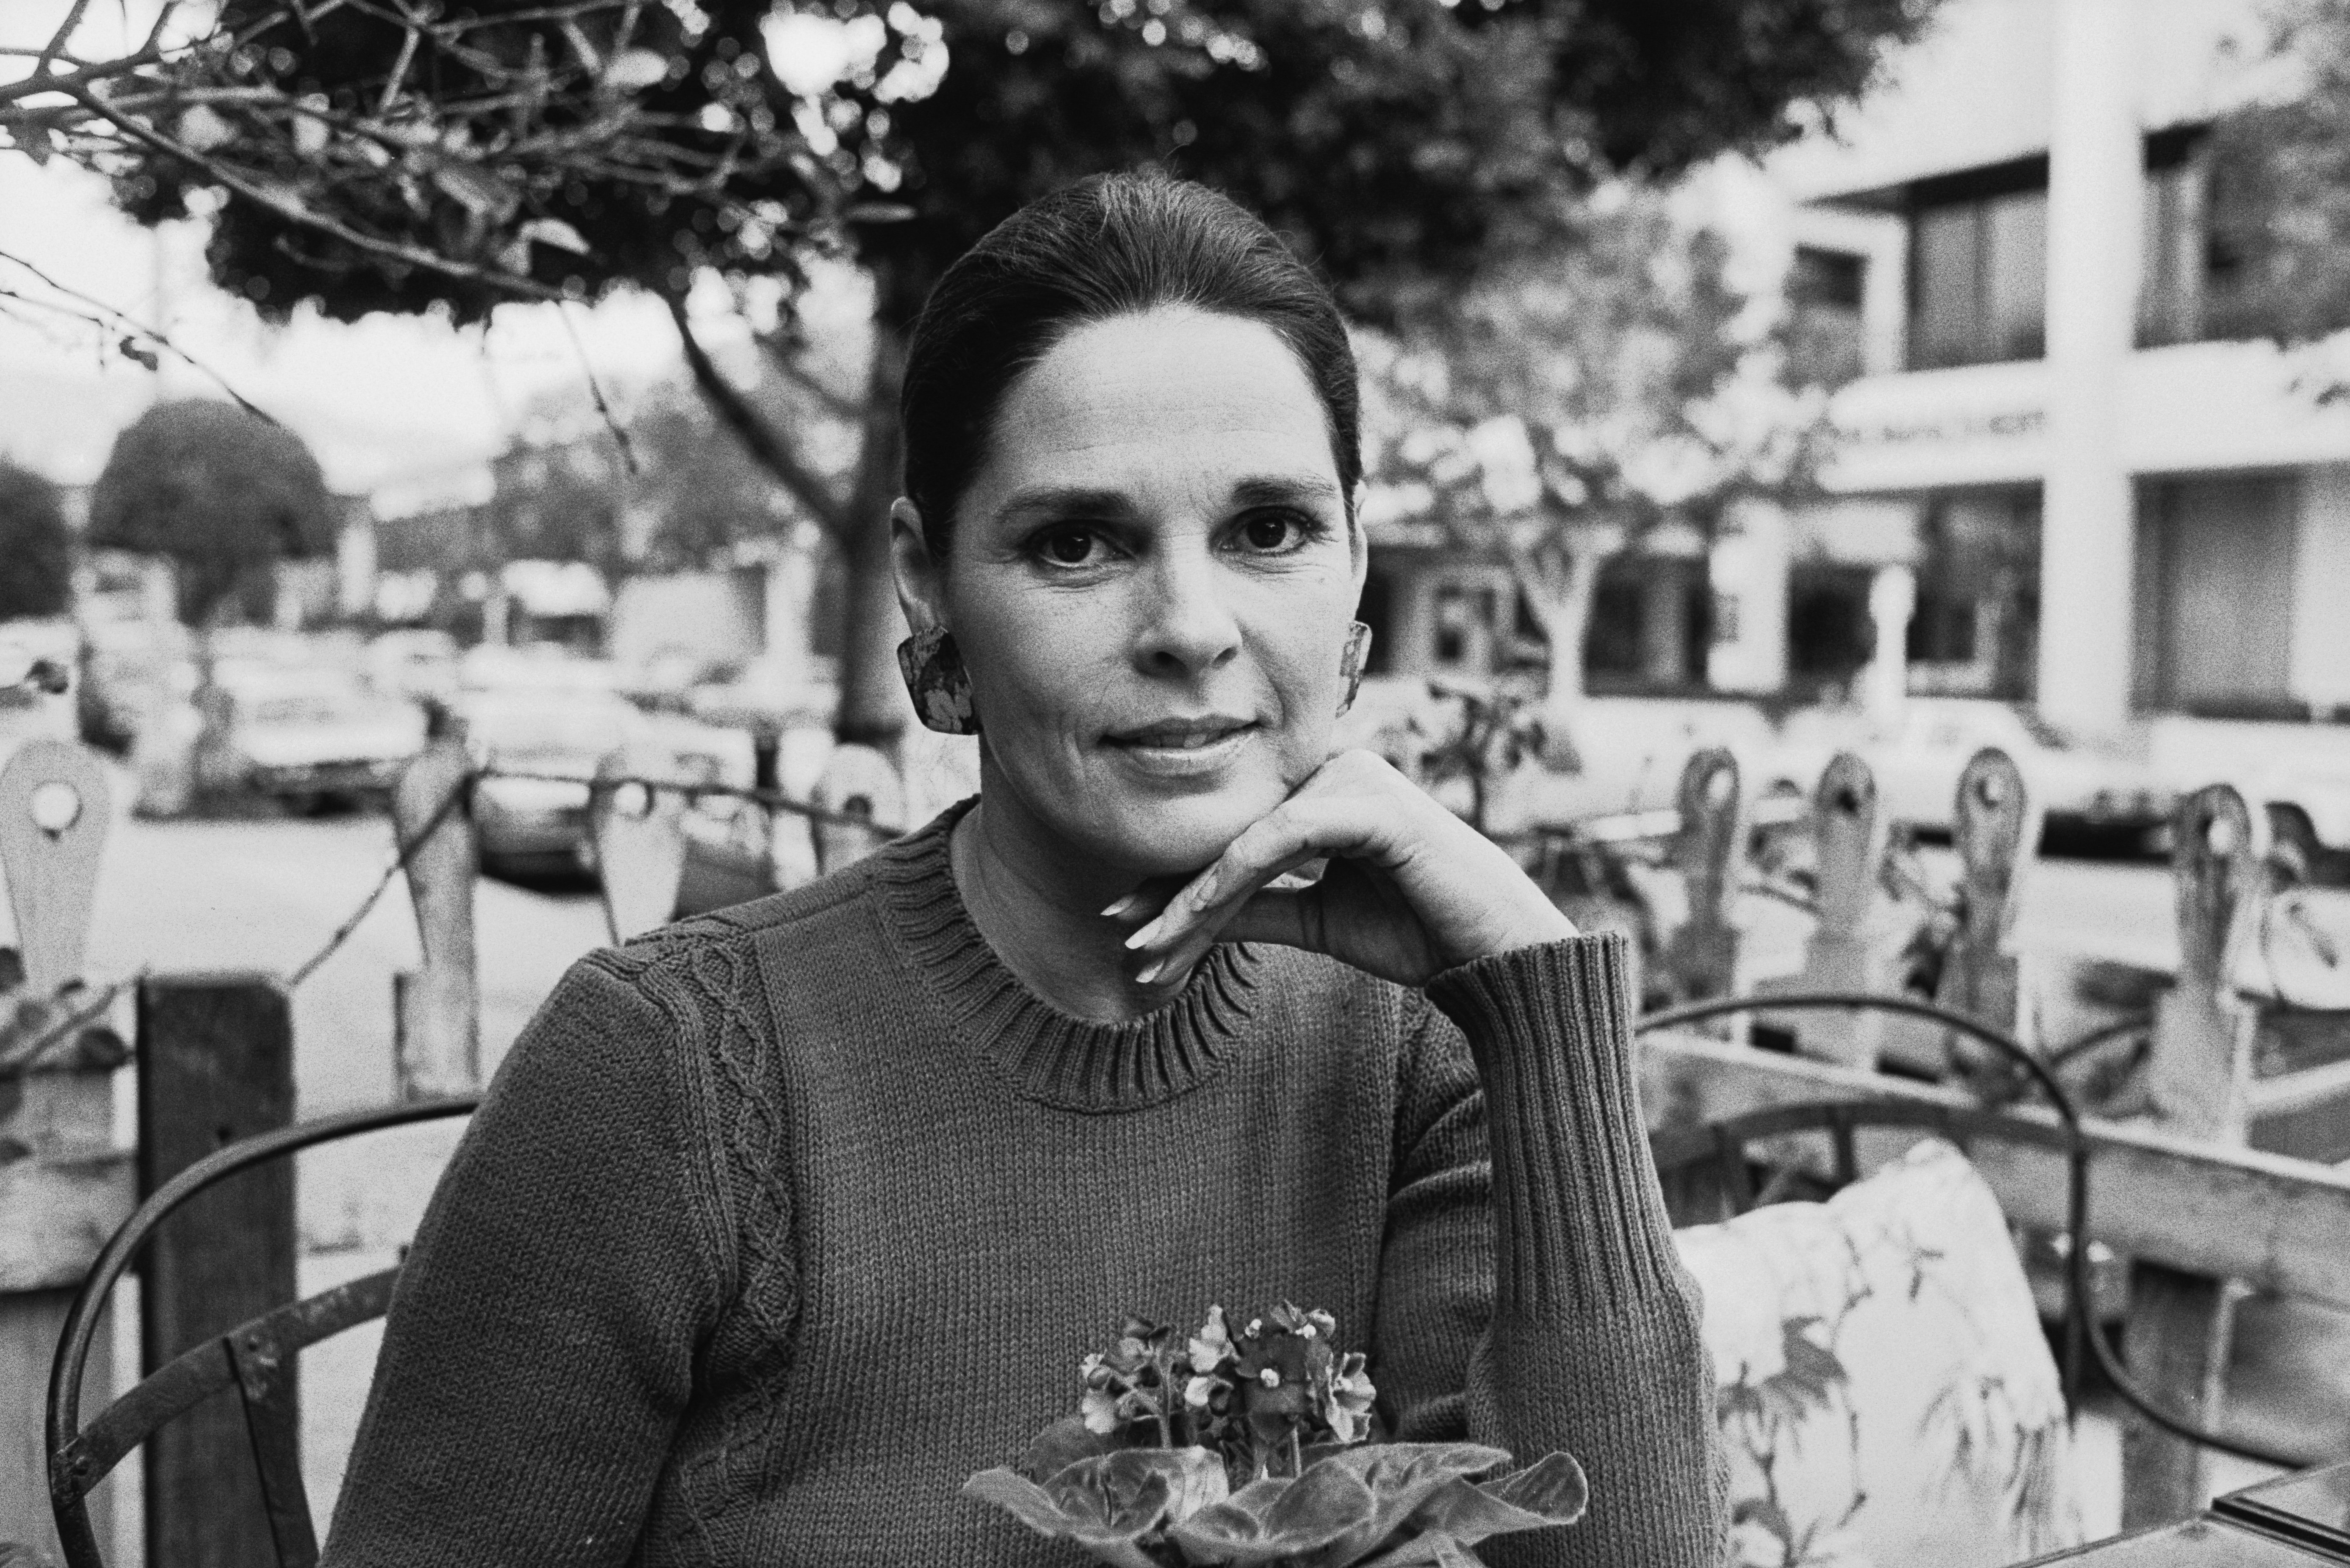 Actress Ali MacGraw, wearing a knitted jumper, as she supports her chin on her hand, 6th February 1985.  Photo: Getty Images